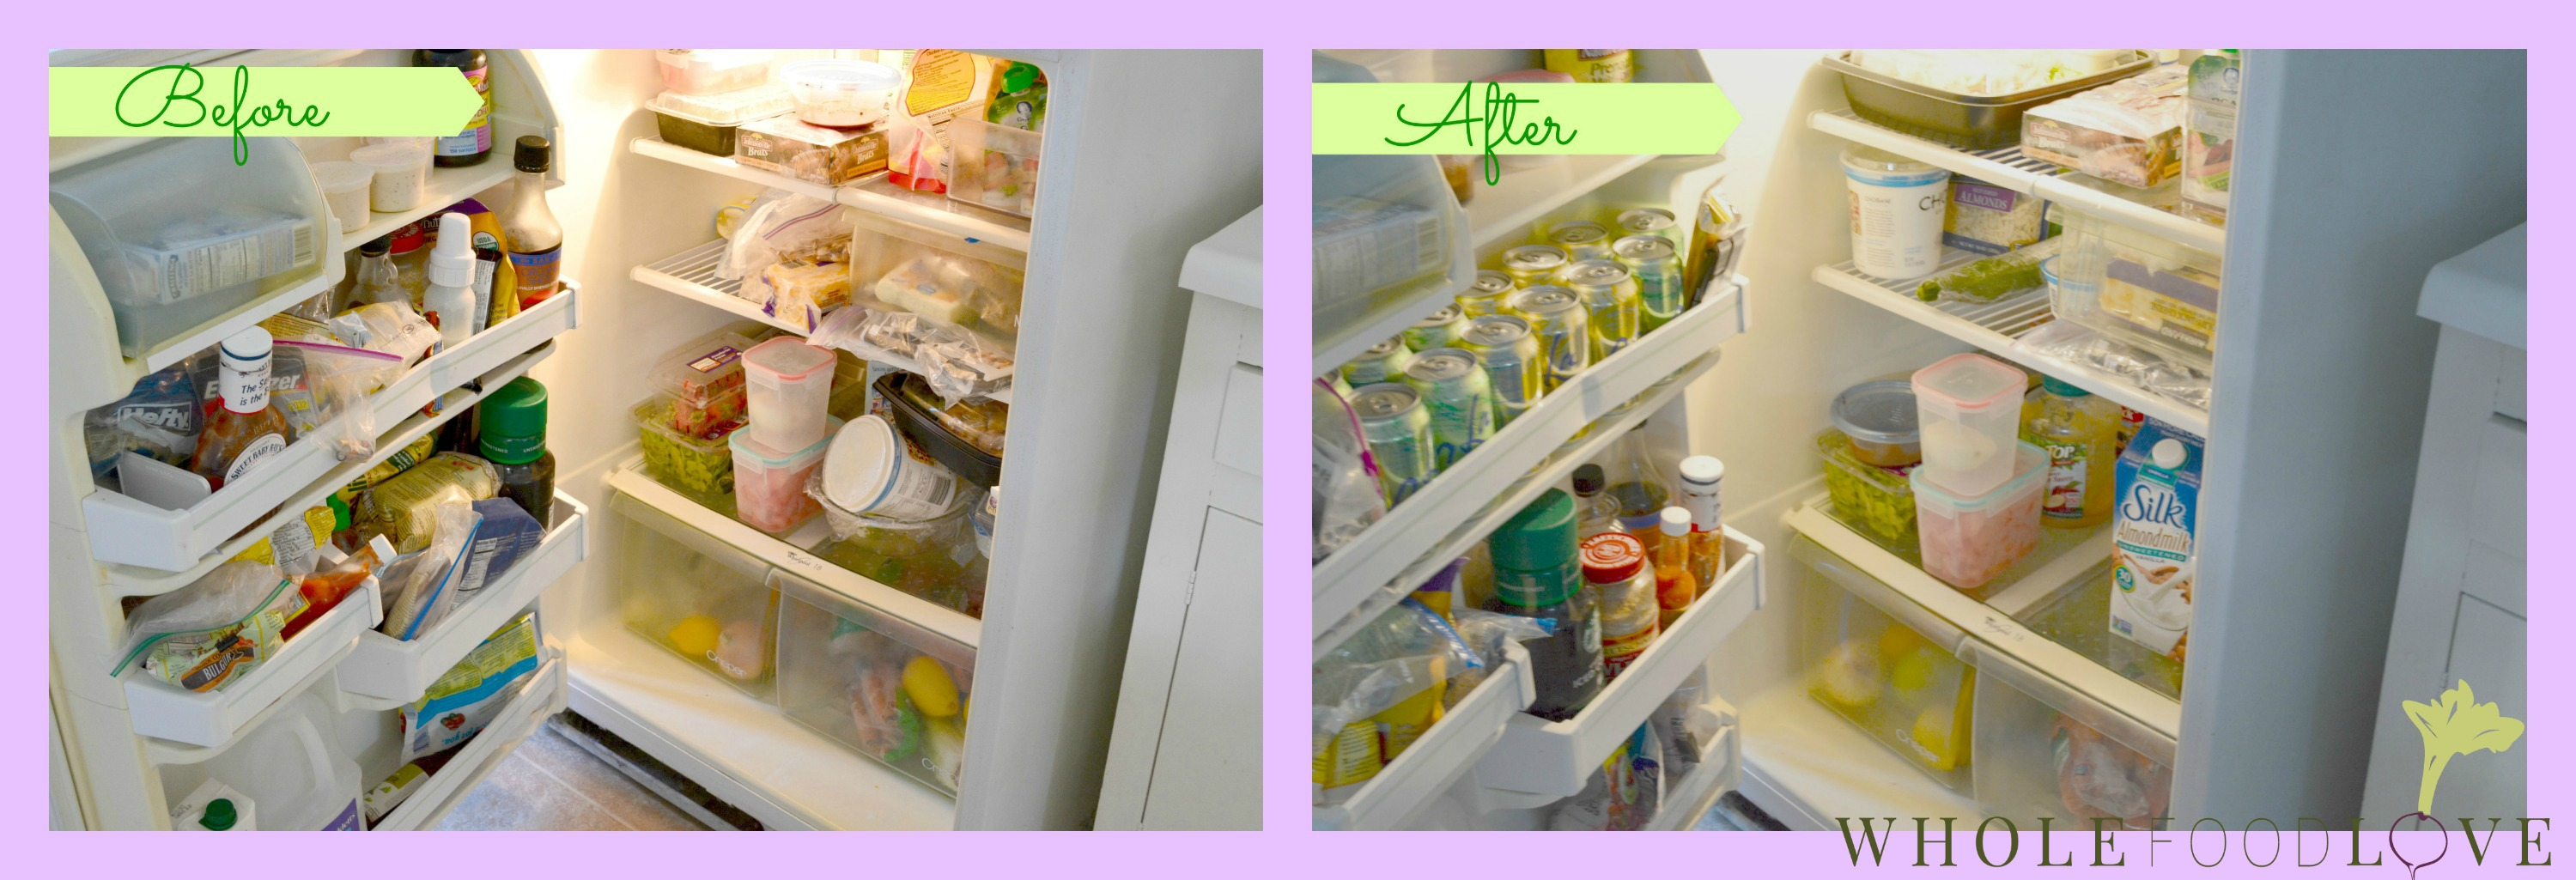 WFL Refrigerator Before + After